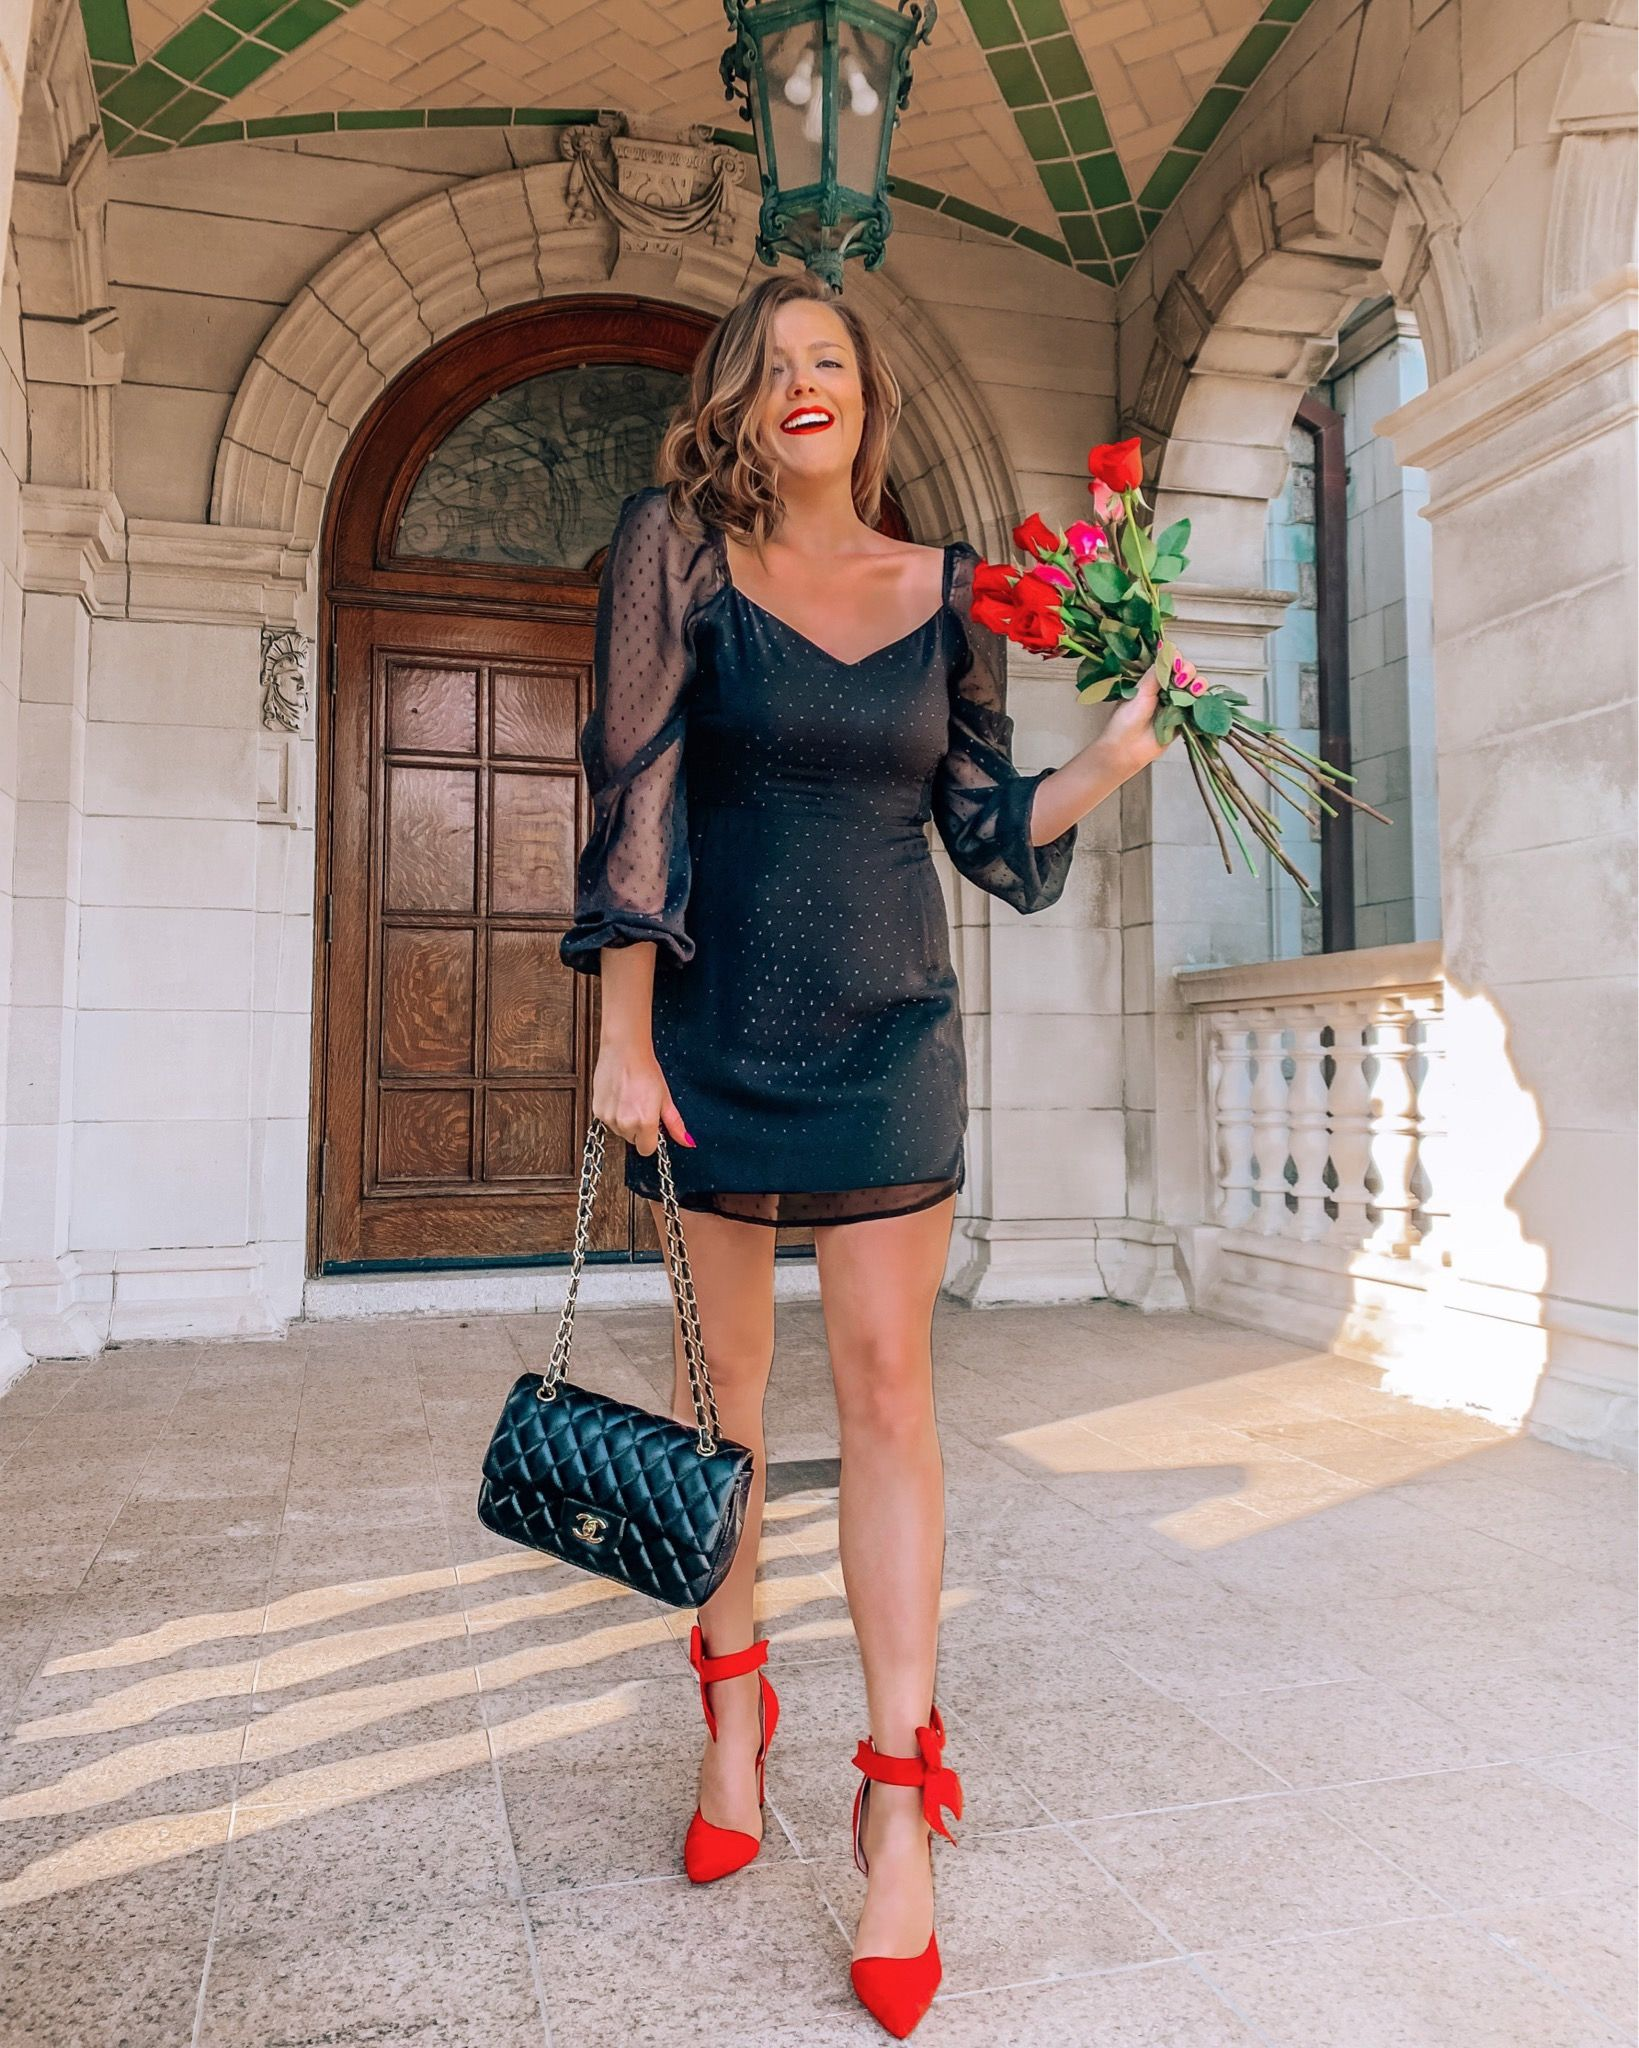 Little Black Dress With Red Heels Roses And Chanel Fashion Outfits Little Black Dress Fashion [ 2048 x 1639 Pixel ]